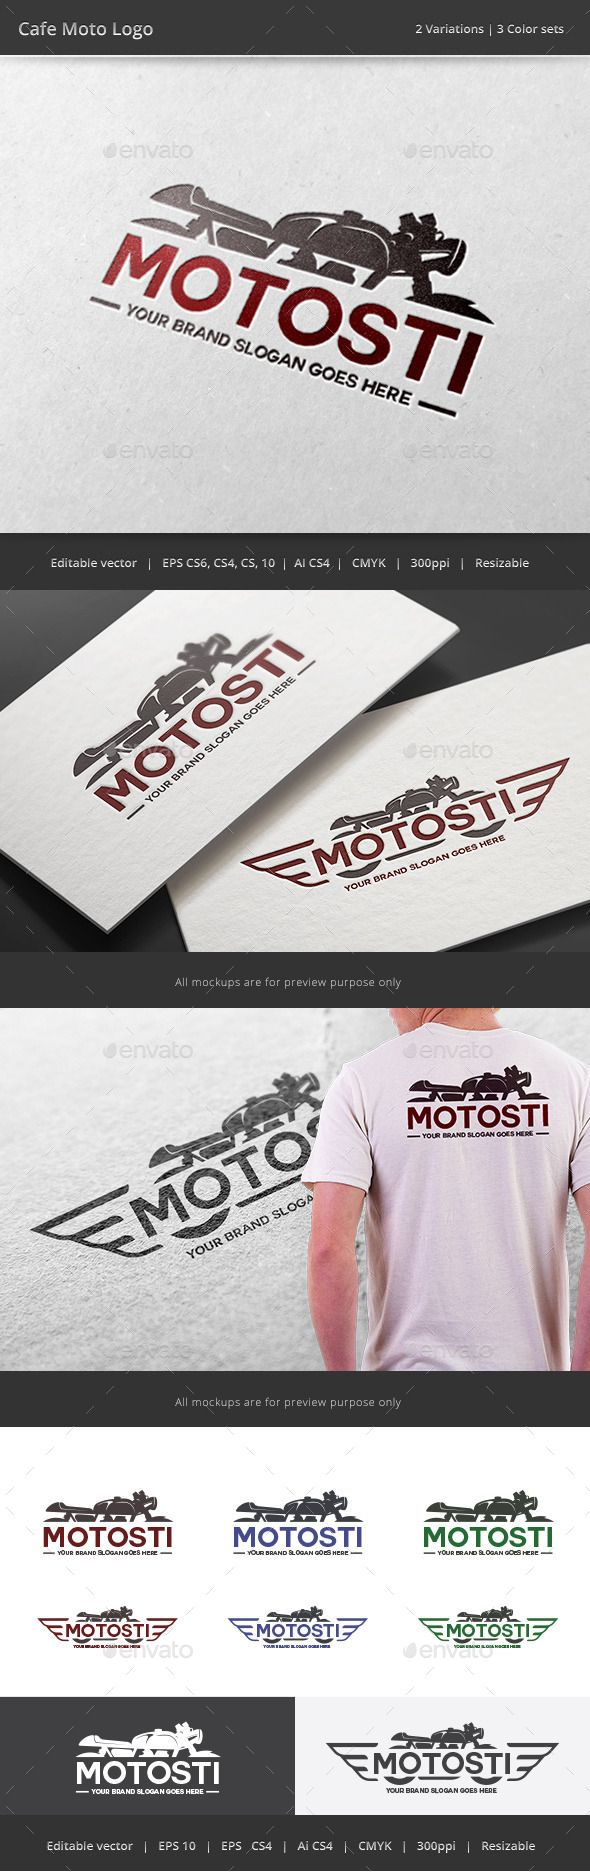 Cafe Motorcycle Logo - Download…